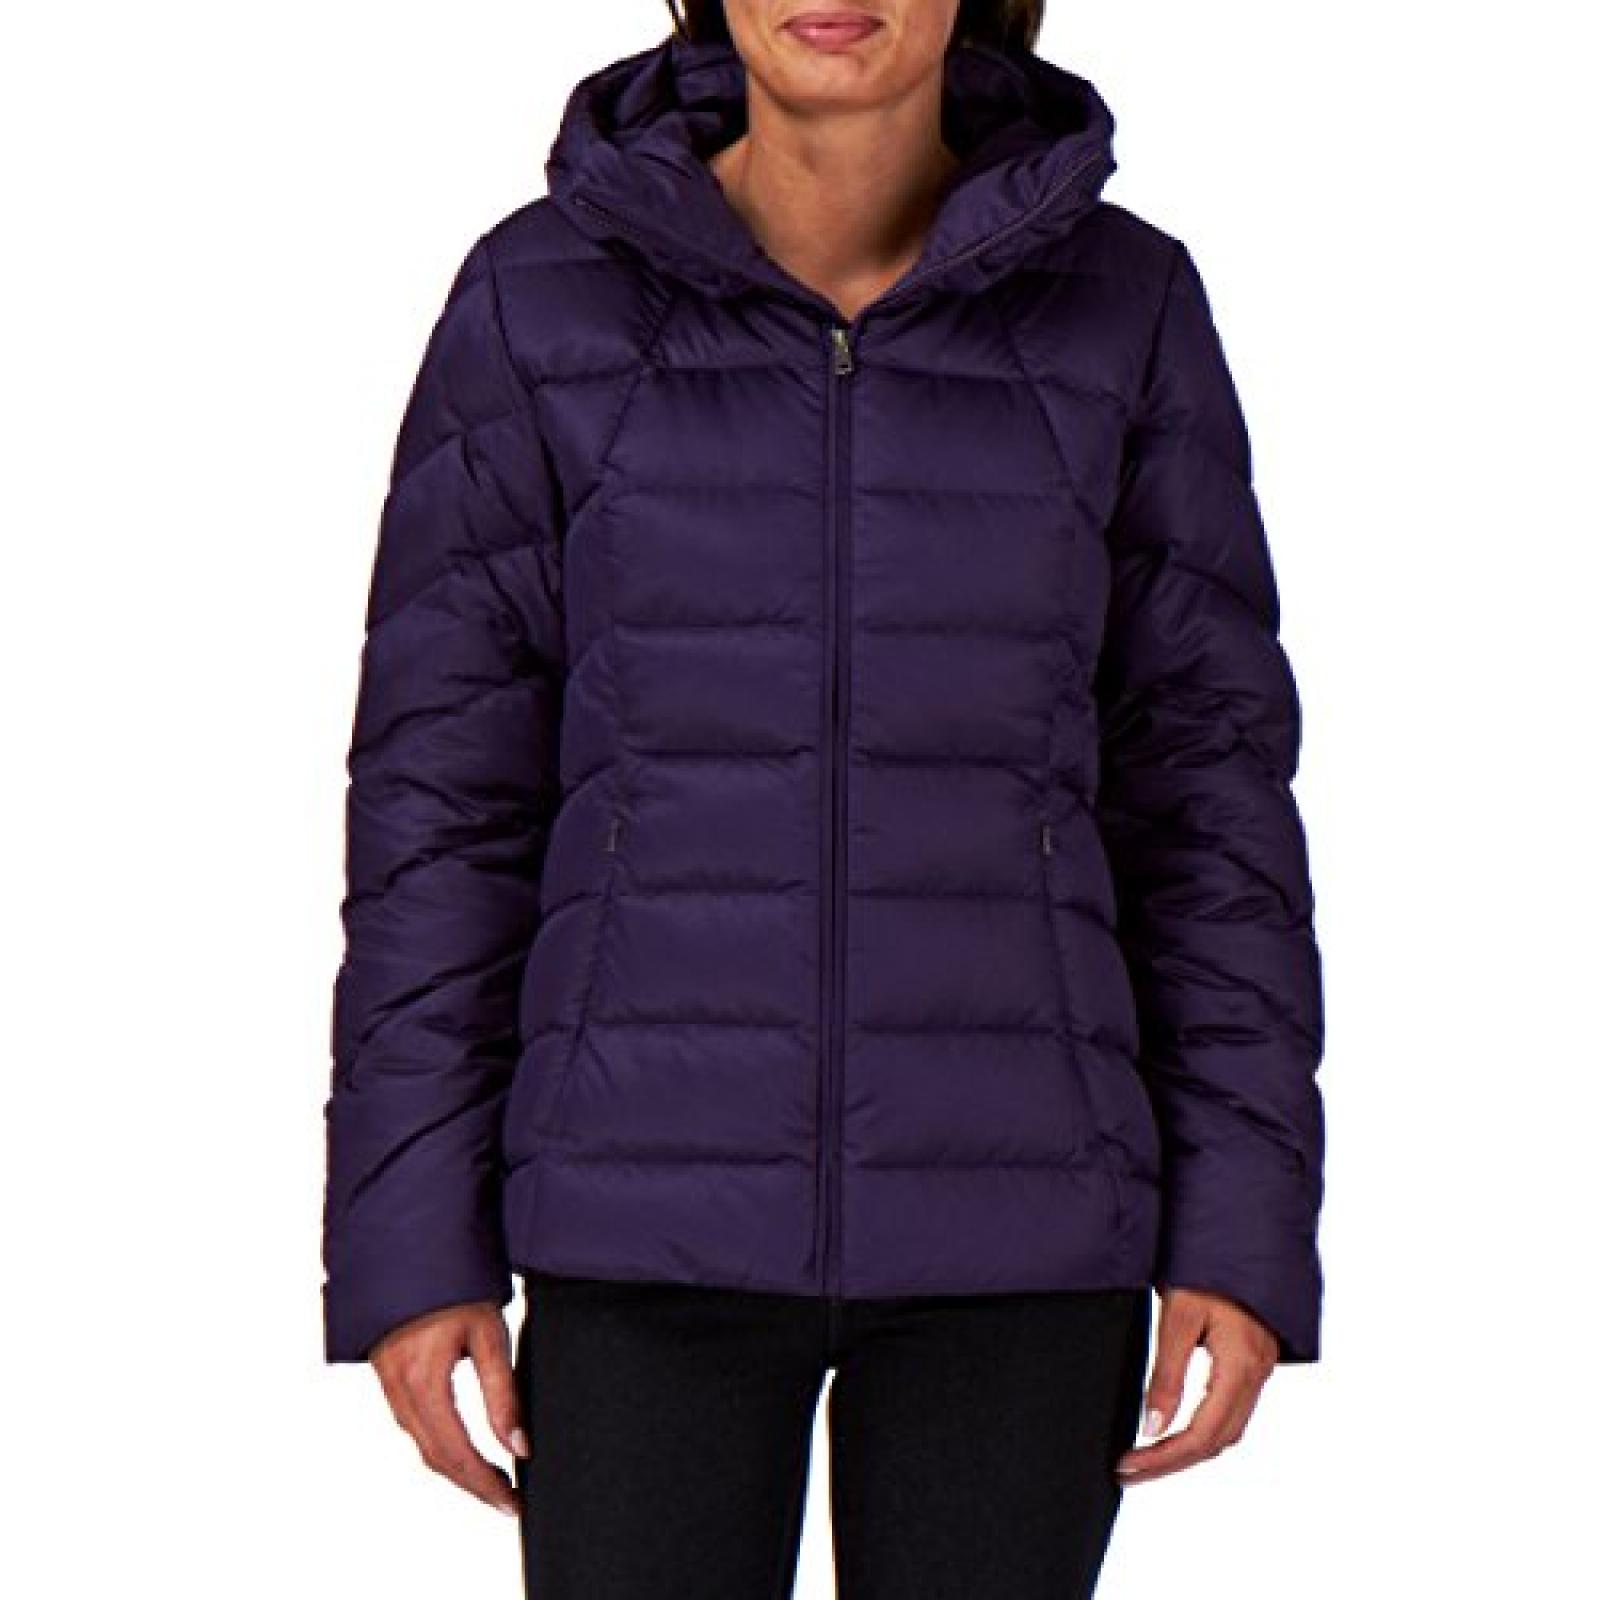 Patagonia Downtown Loft Jacket - Tempest Purple